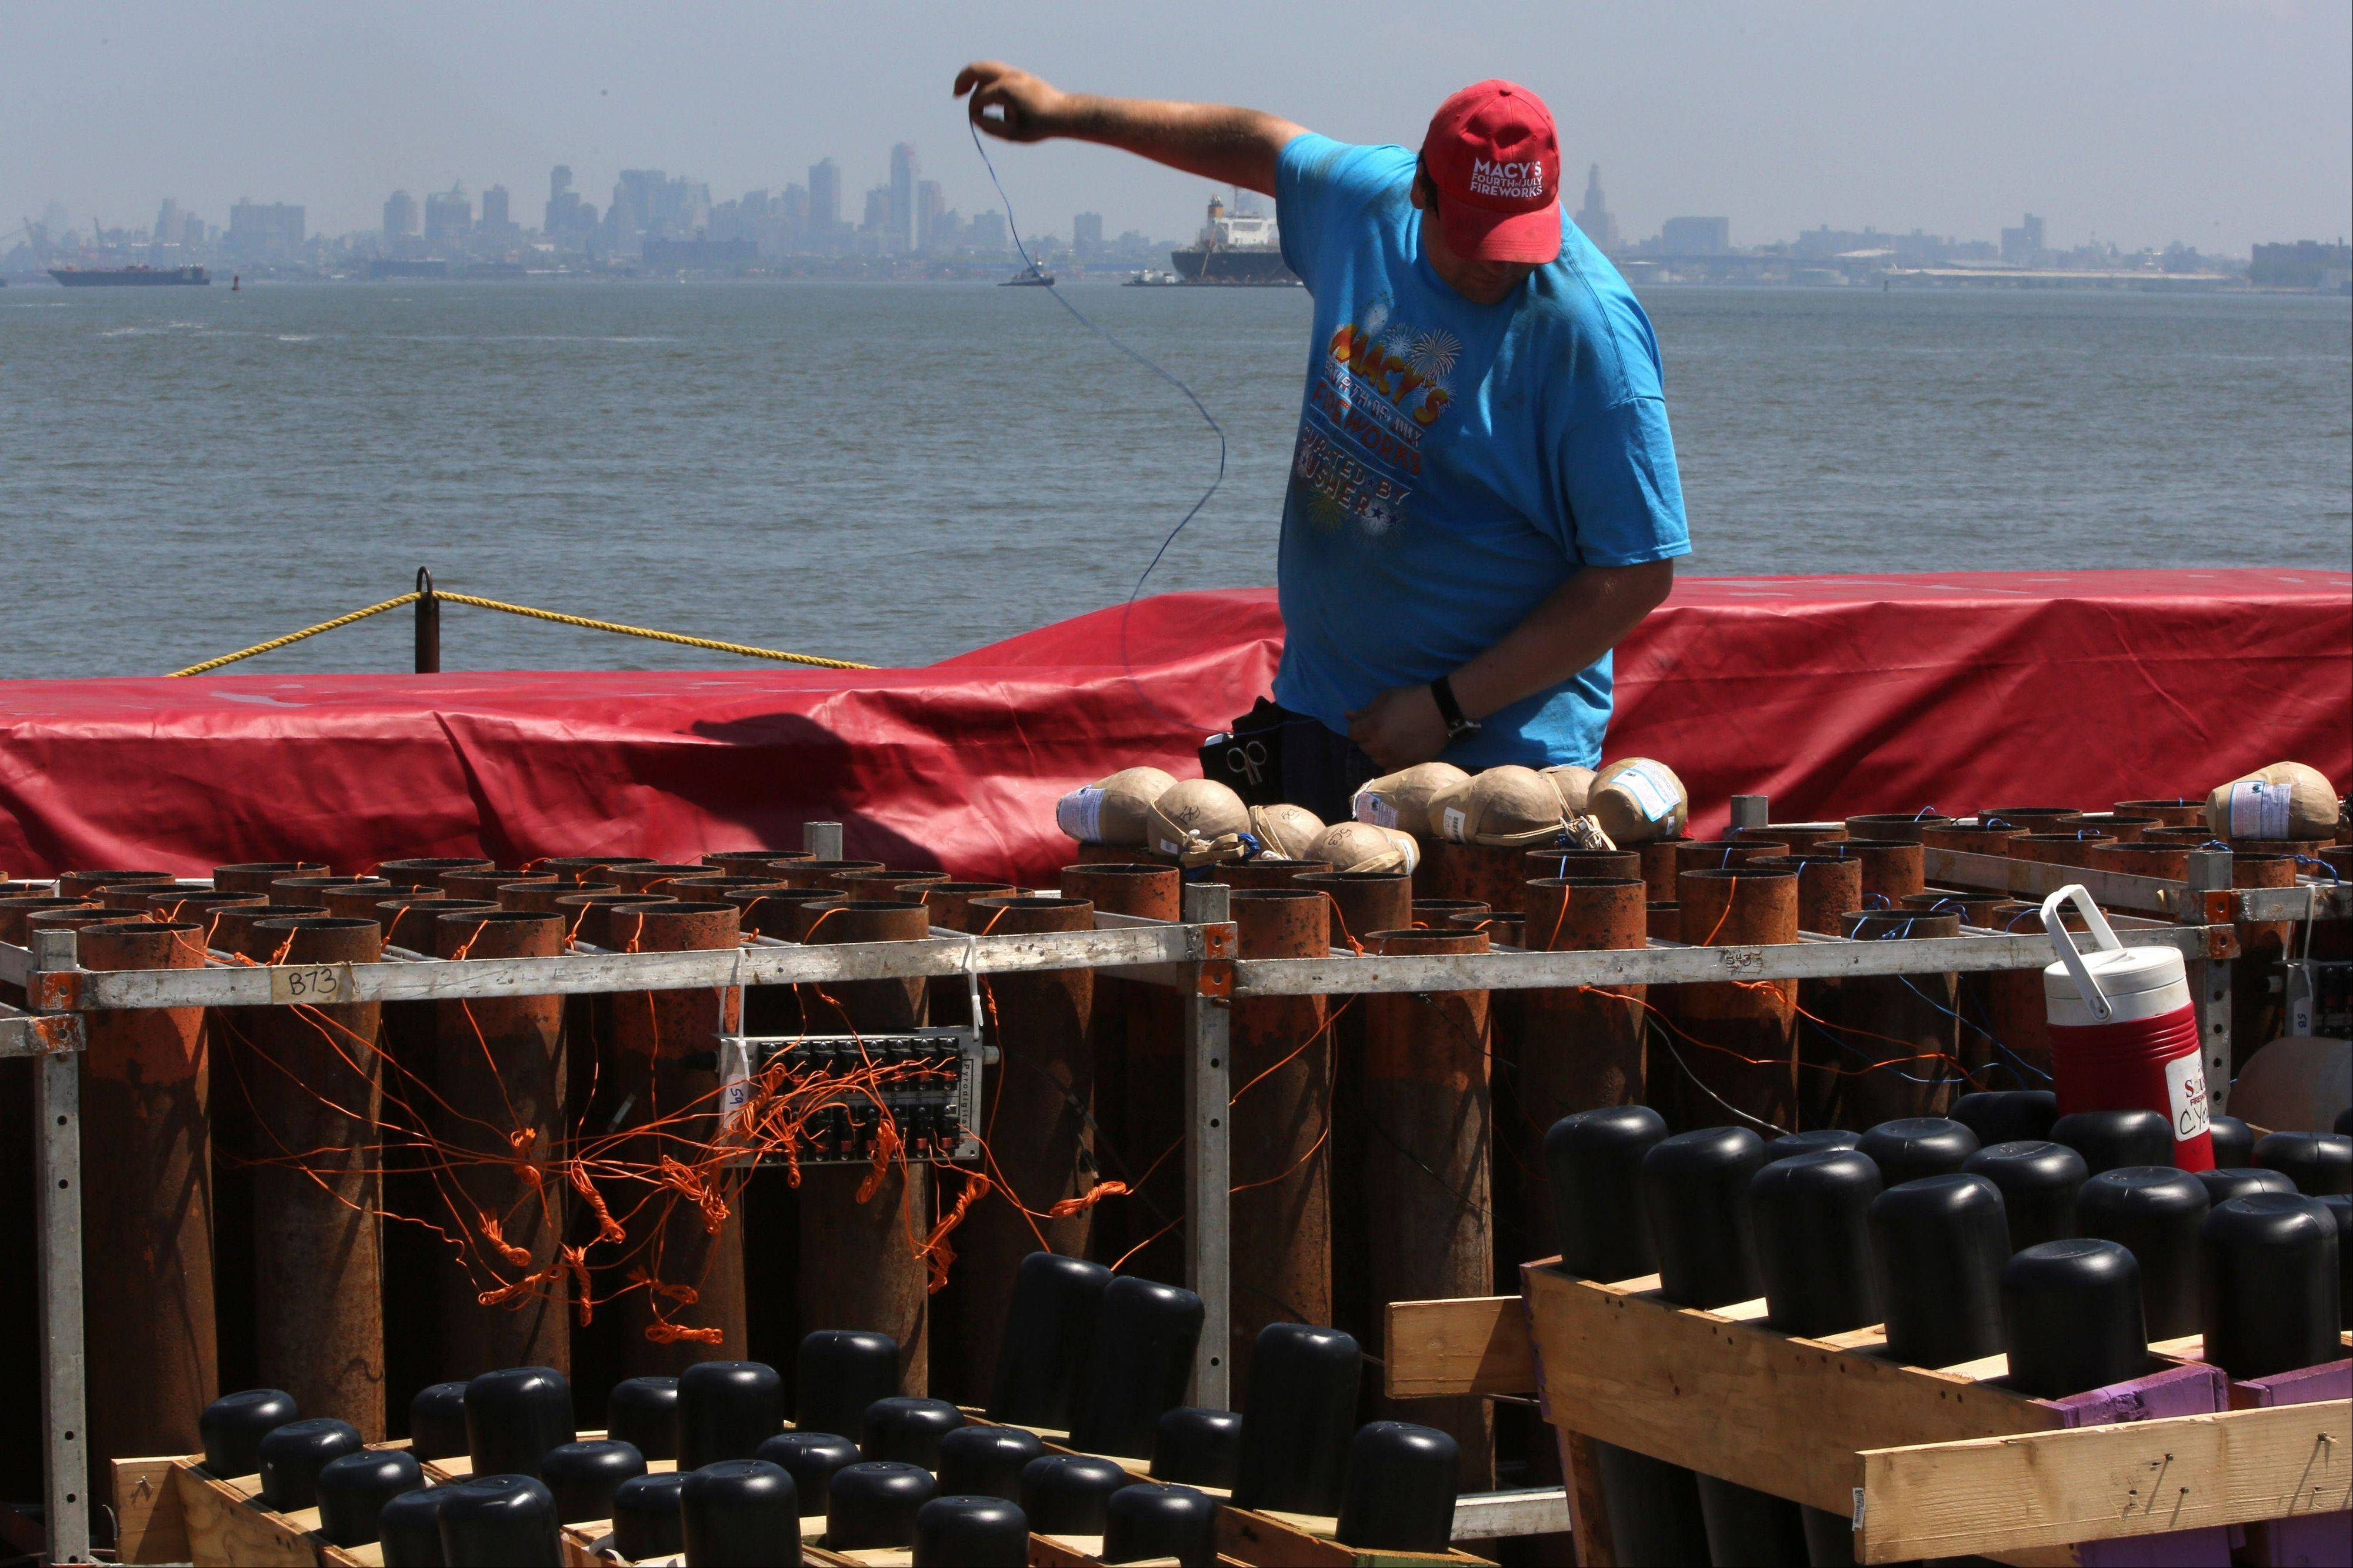 A worker loads shells into mortars on a barge docked Saturday in the Staten Island borough of New York.